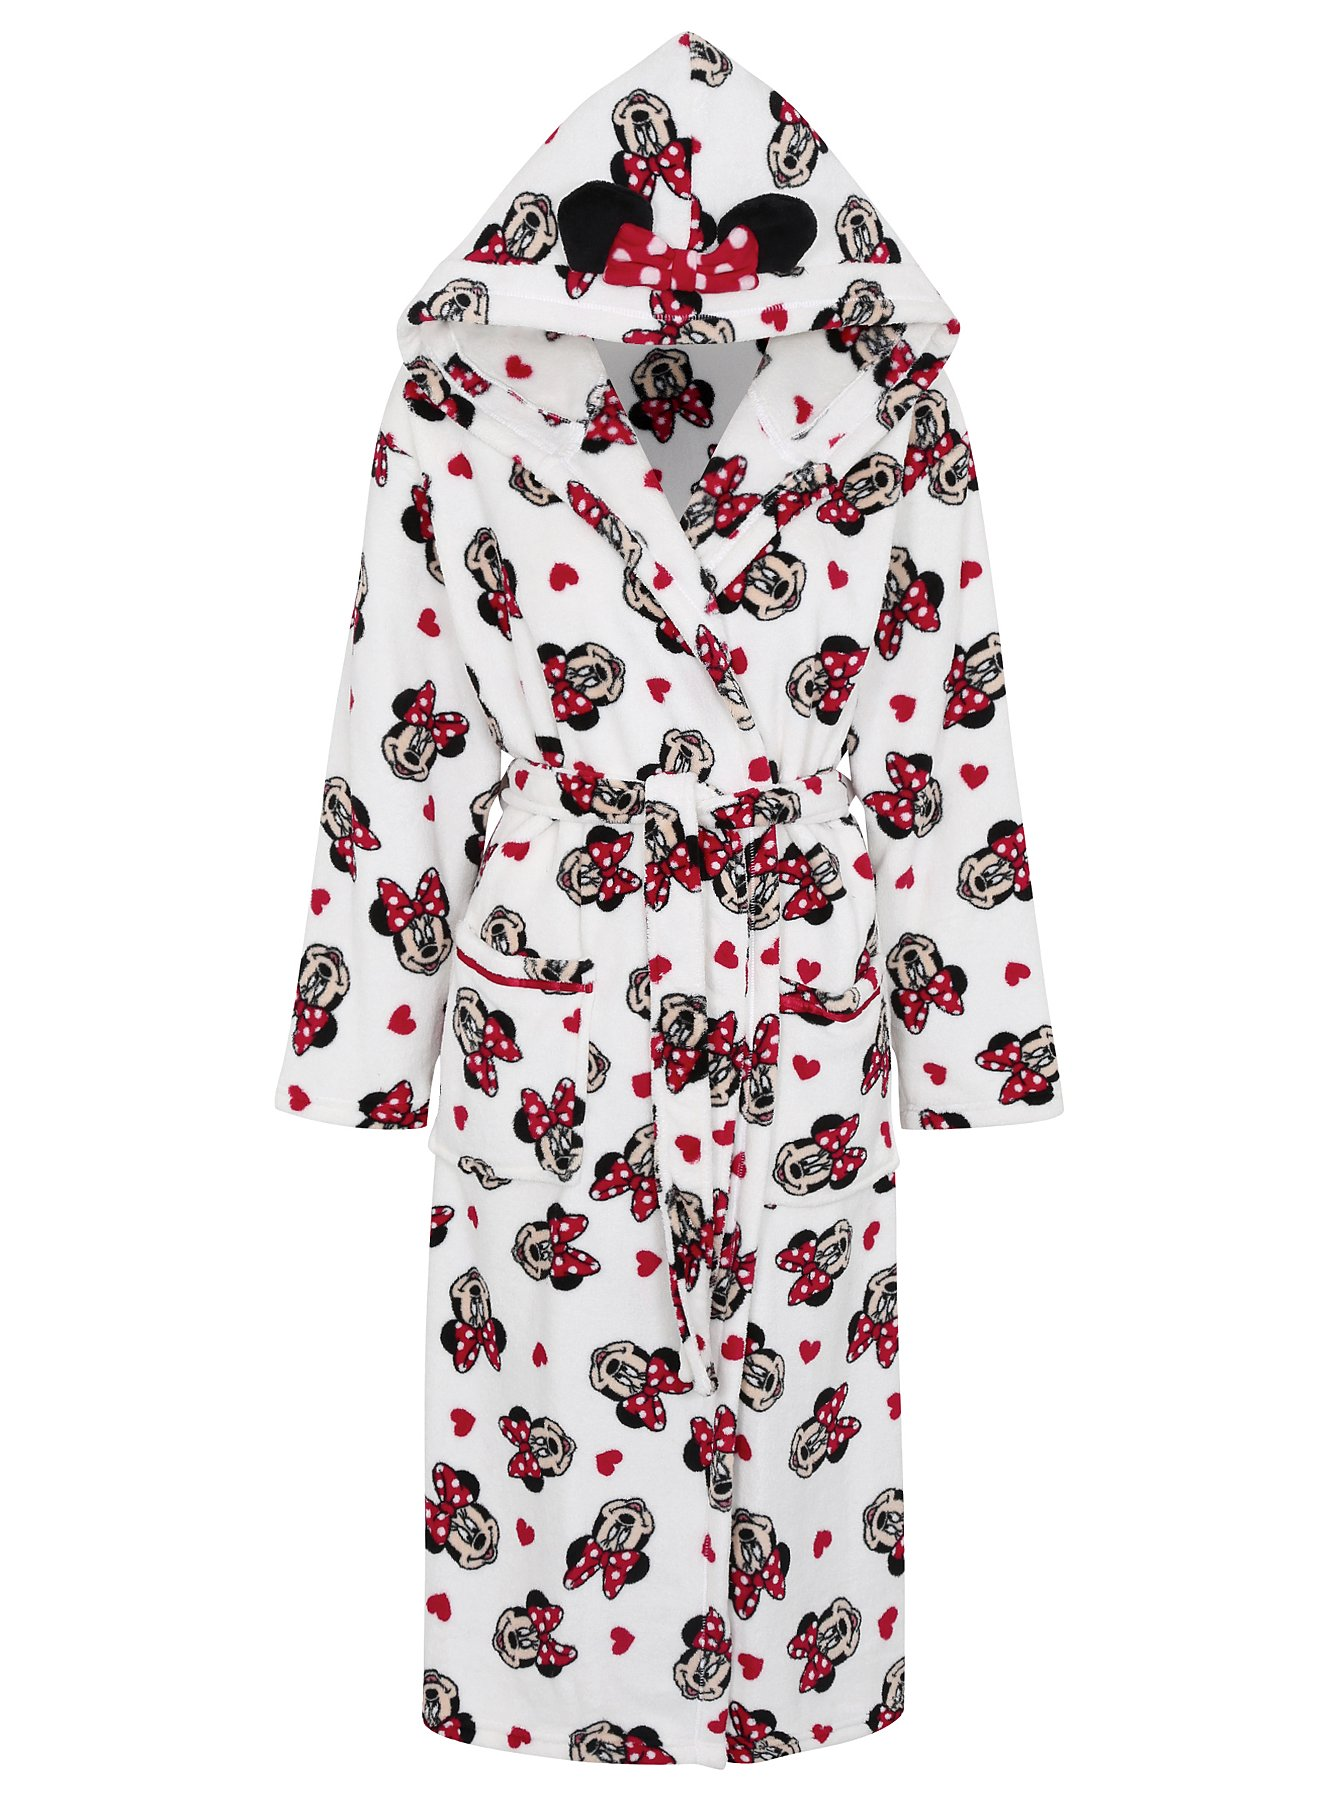 Disney Minnie Mouse Dressing Gown   Women   George at ASDA